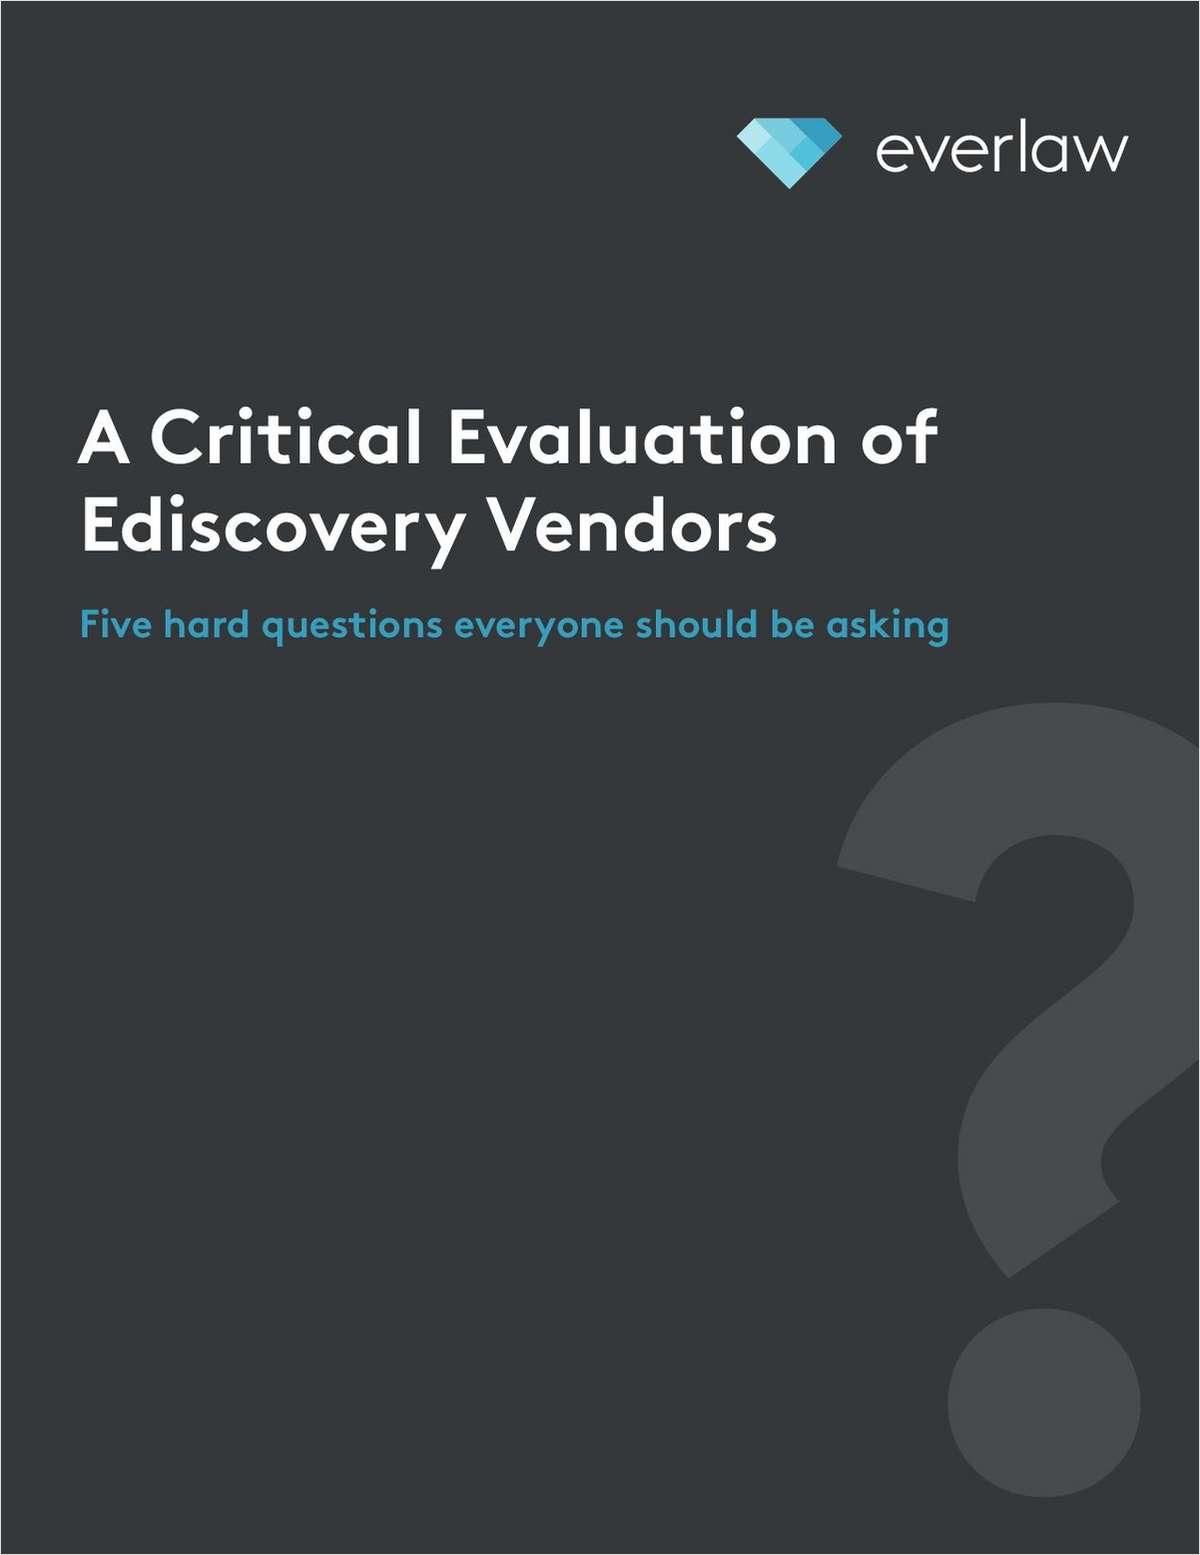 How to Critically Evaluate Ediscovery Vendors: 5 Hard questions to Ask